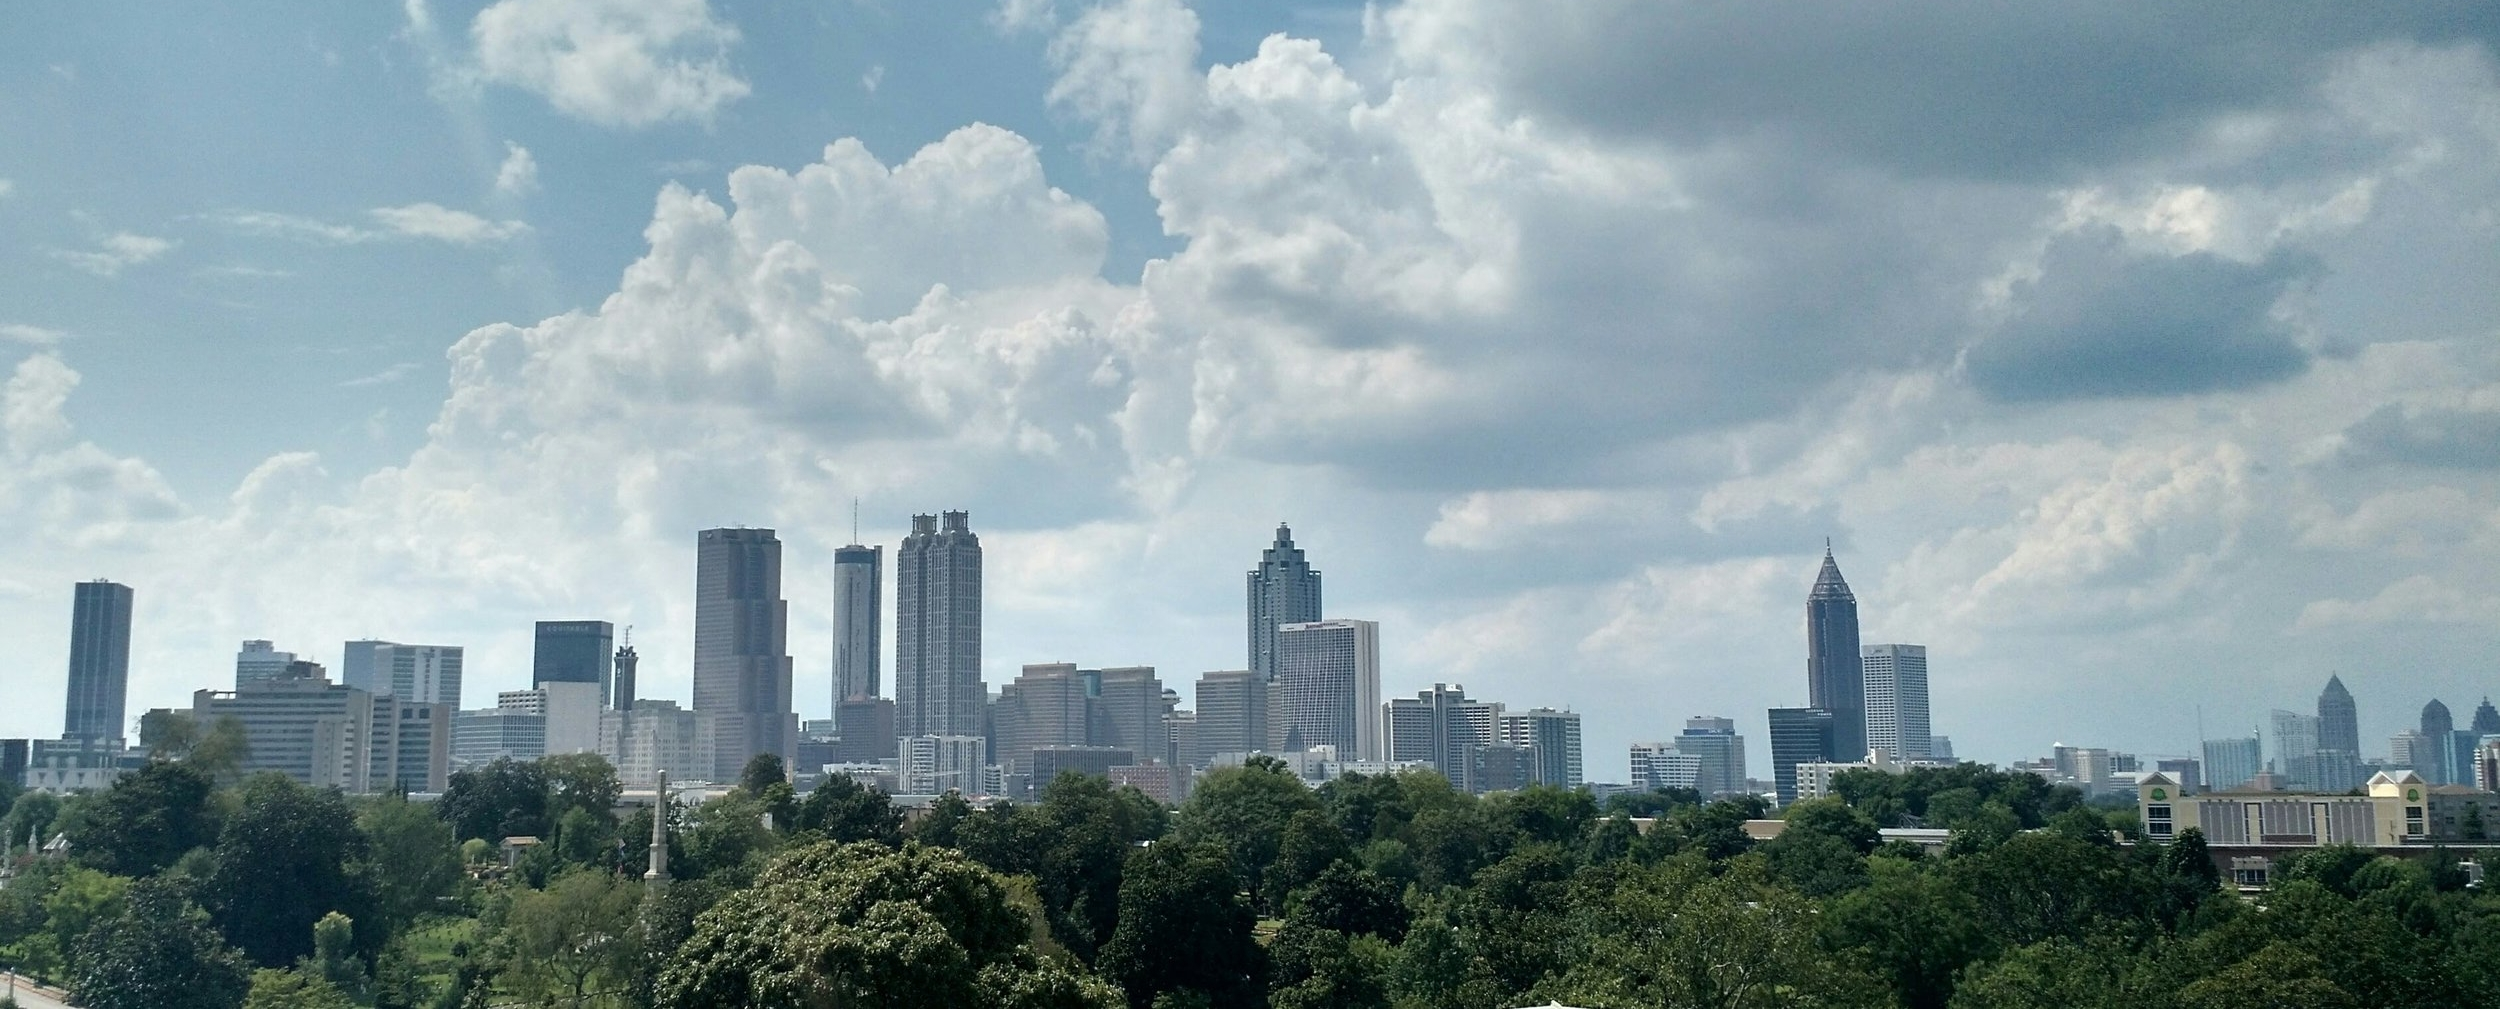 """47.9% - Atlanta has the highest percentage of overall urban tree canopy in the United States.Providing the city the moniker of the """"City in the Forest."""""""